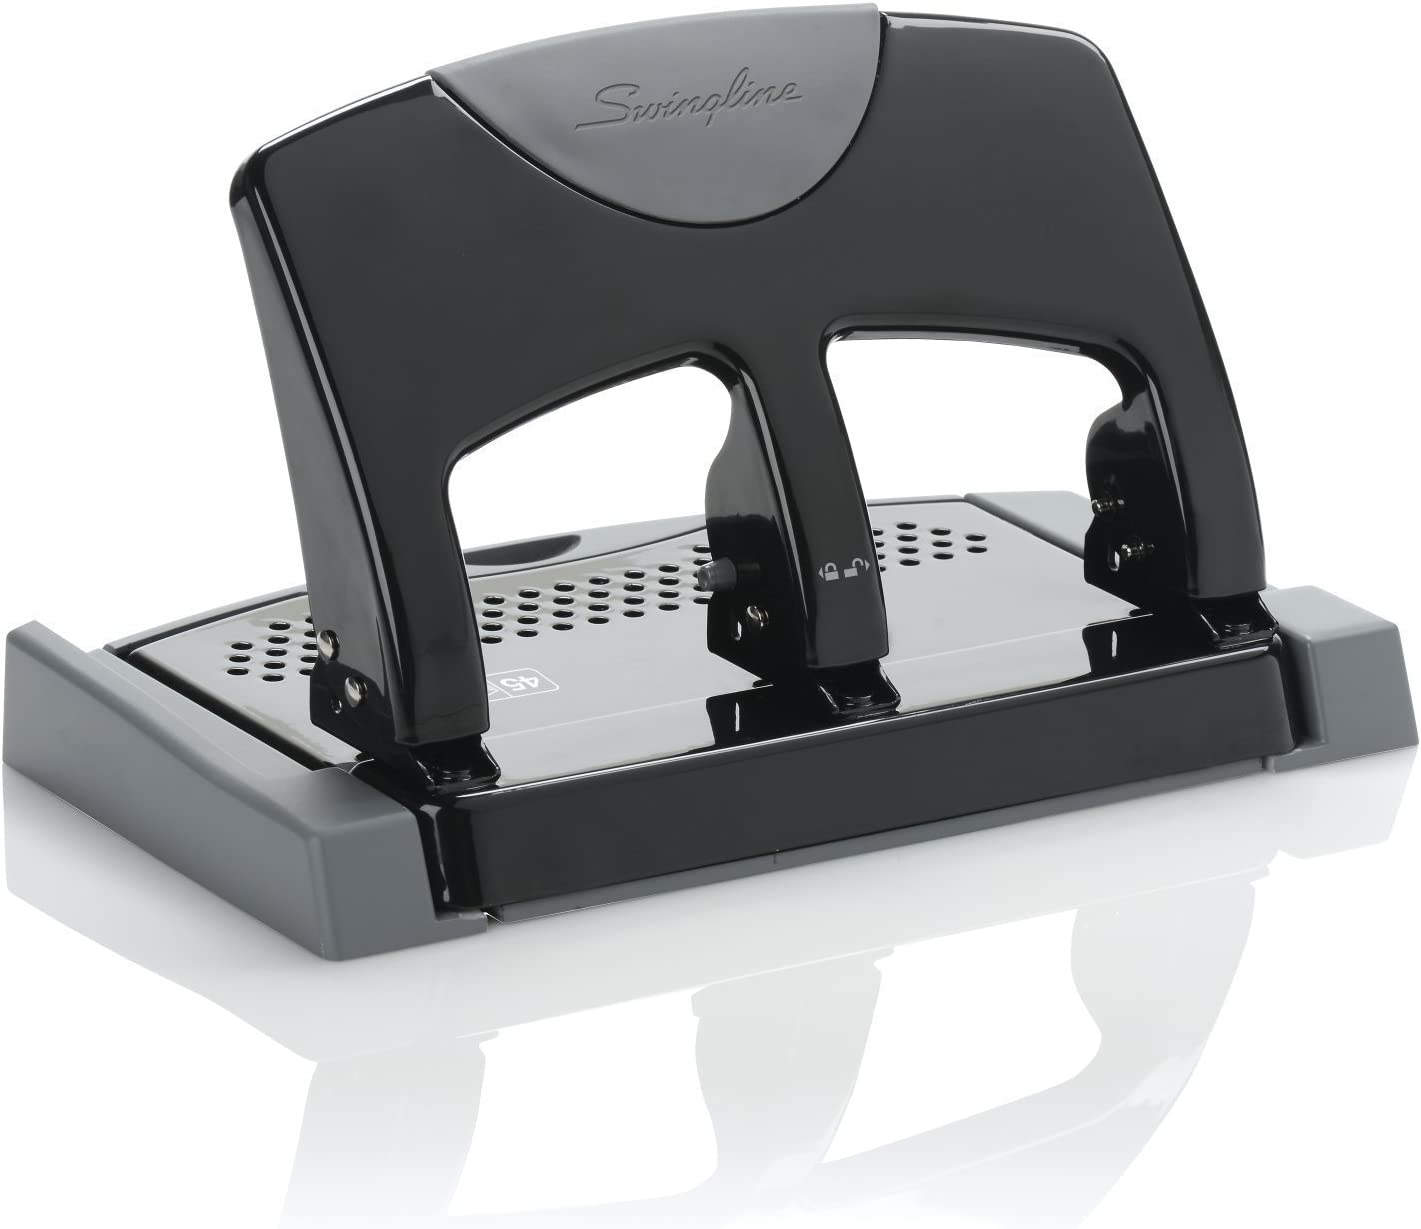 2 Punchers 45 Sheets A7074136 SmartTouch Swingline 3 Hole Punch Low Force